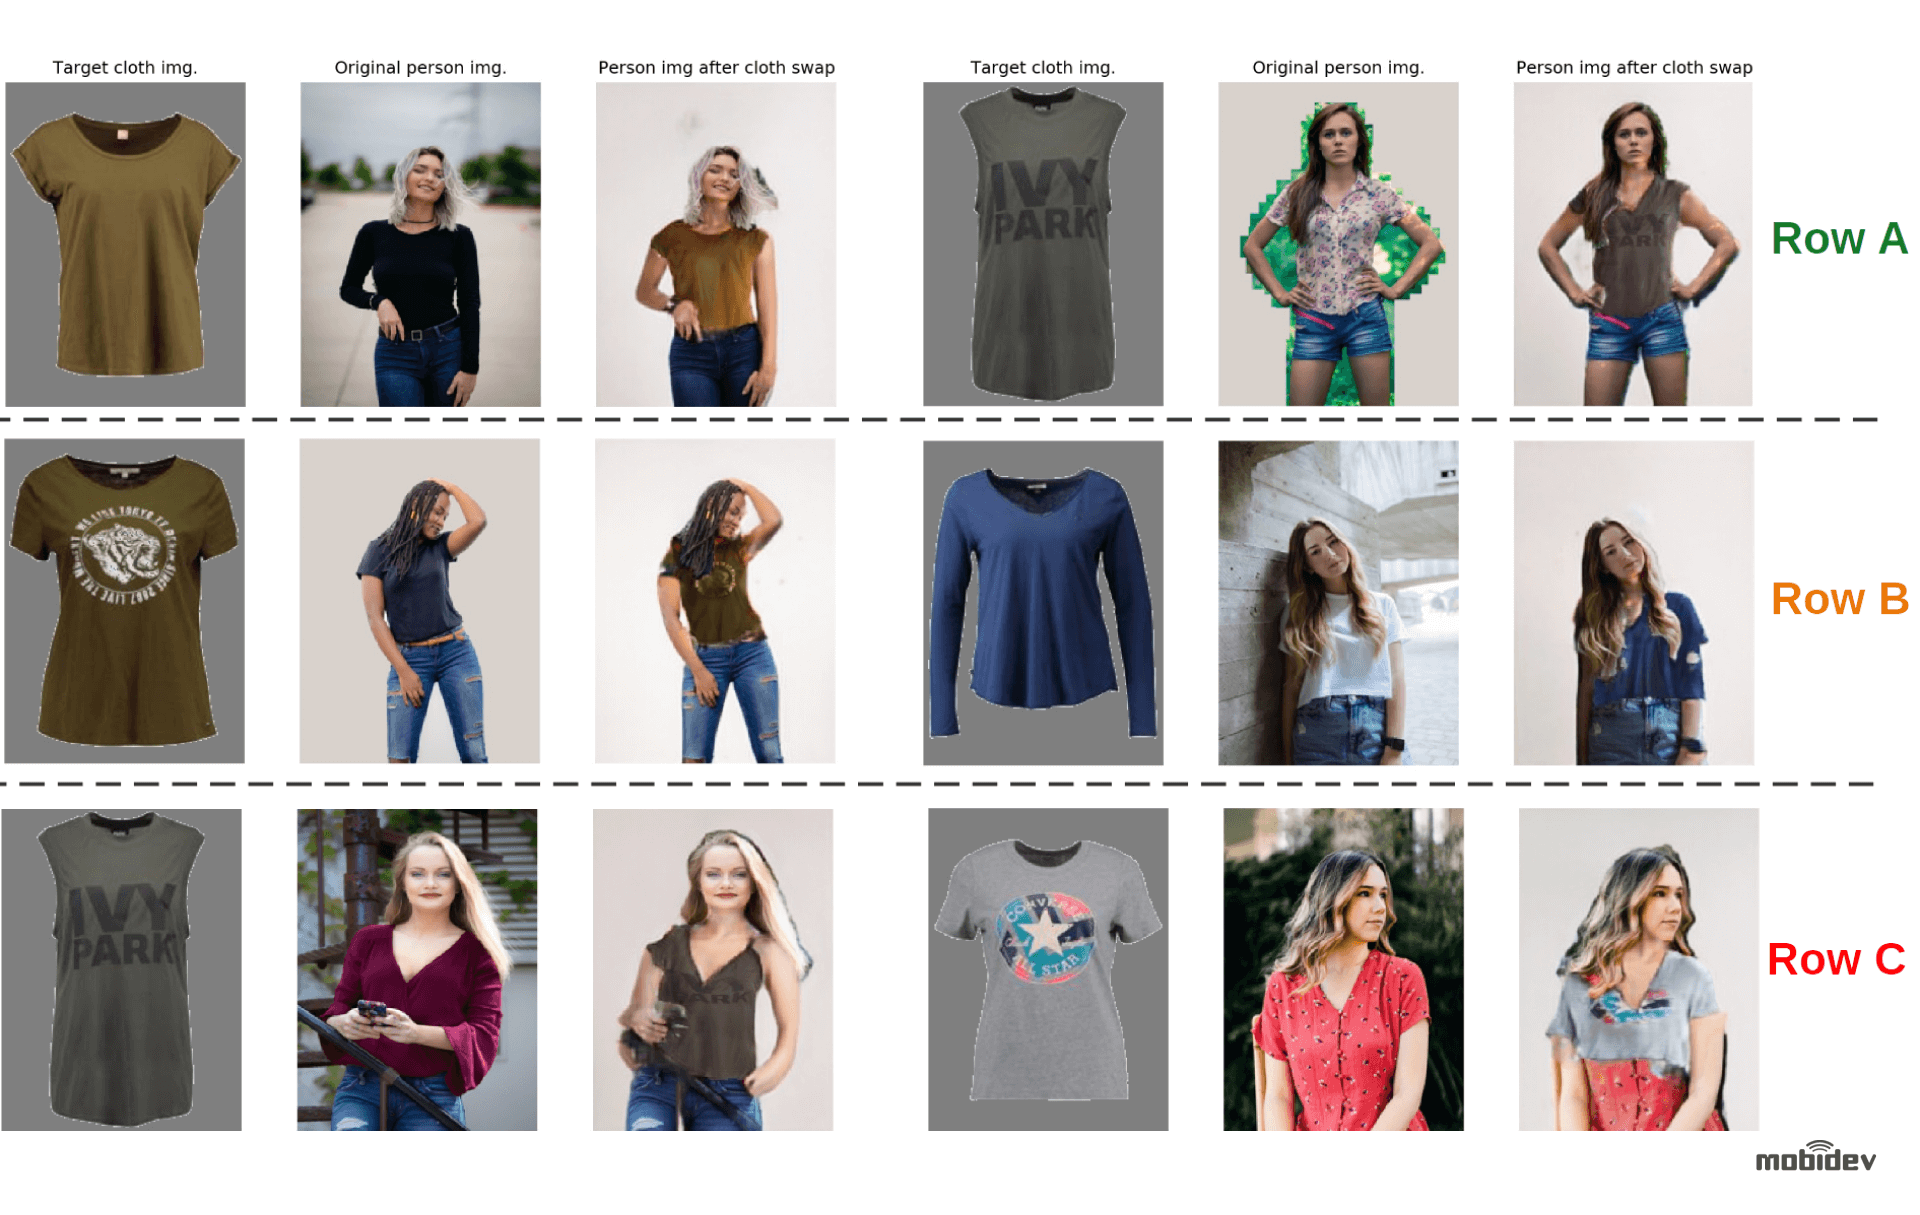 Outputs of clothing replacement on images with unconstrained environment